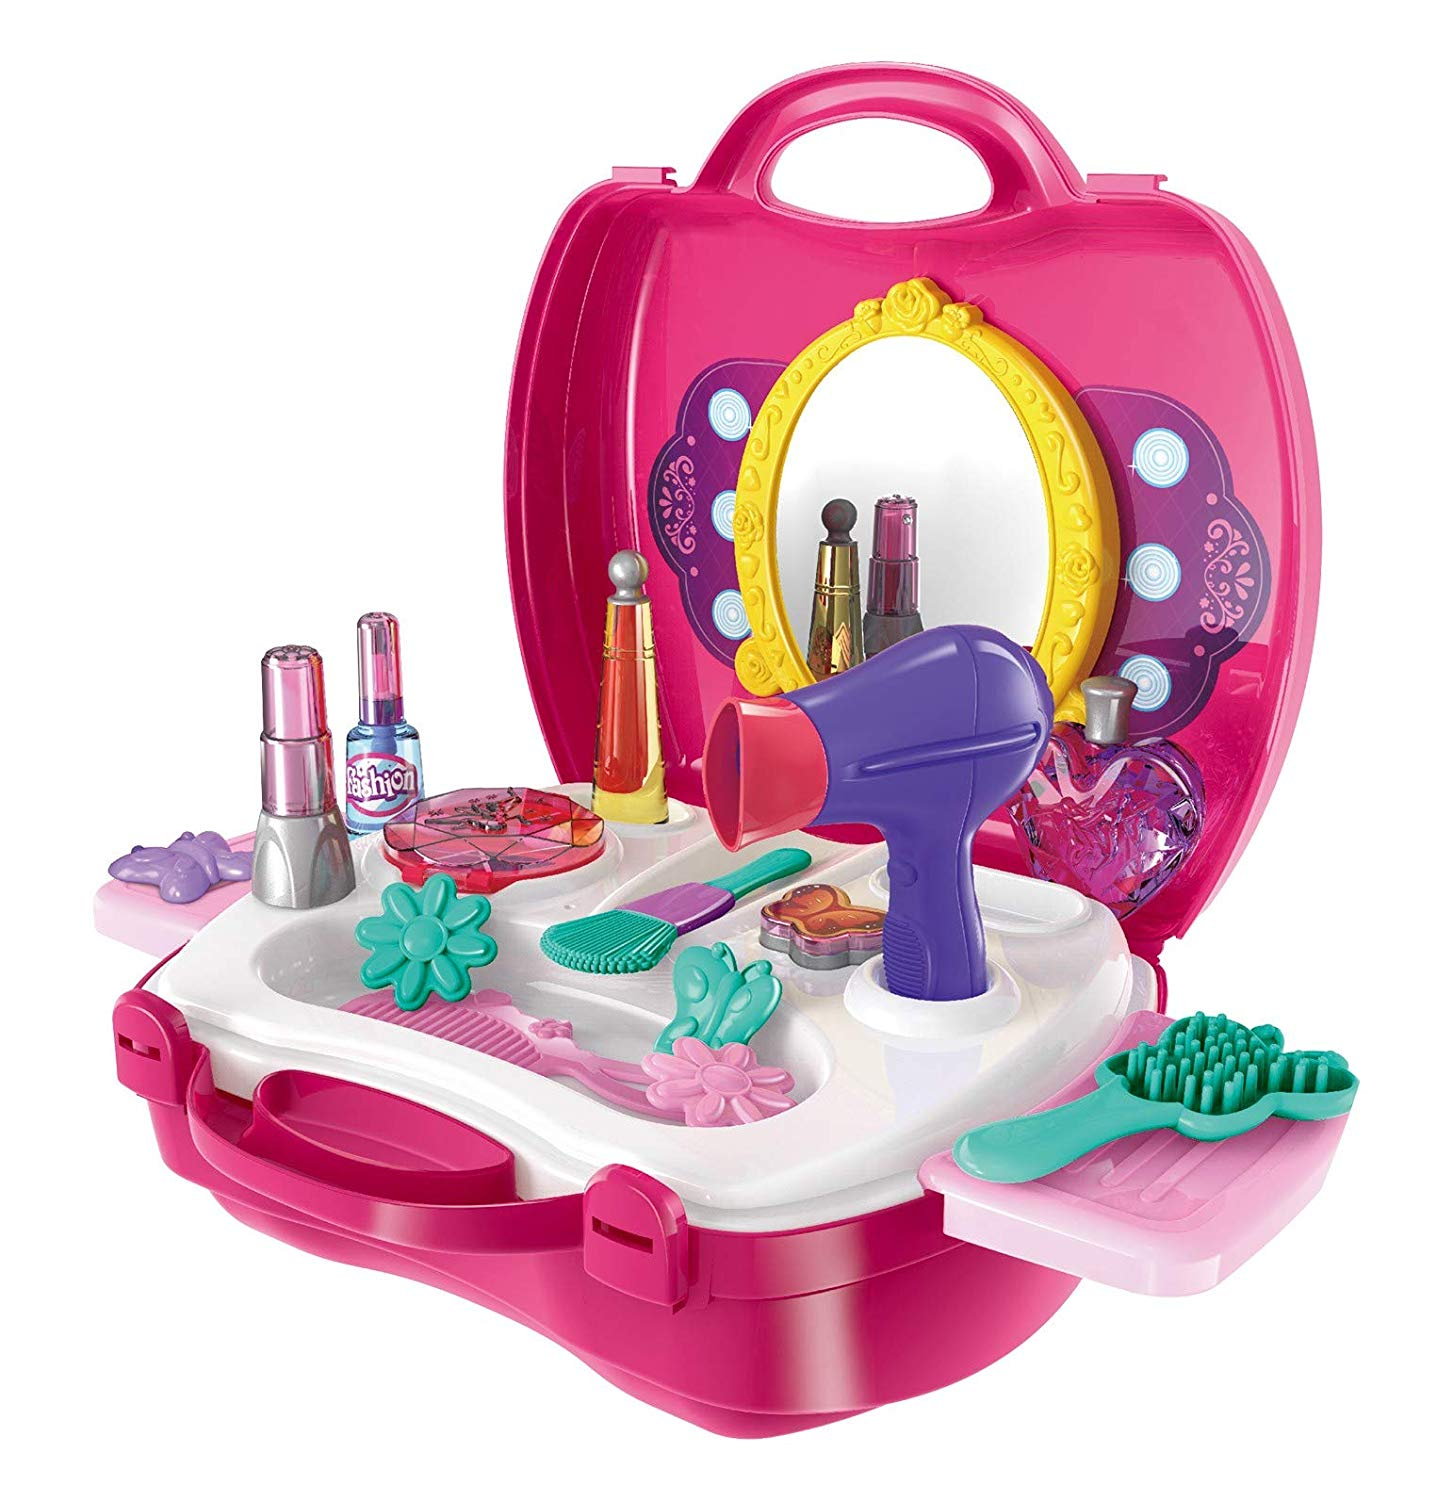 Make Up Case Little Girls Cosmetic Set – Pretend Play Accessories For Toddler Kids, Beauty Salon, 21 Pieces Makeup And Cosmetic Vanity Case, Durable Dress-Up Beauty Kit Hair Salon Playset For Girls,